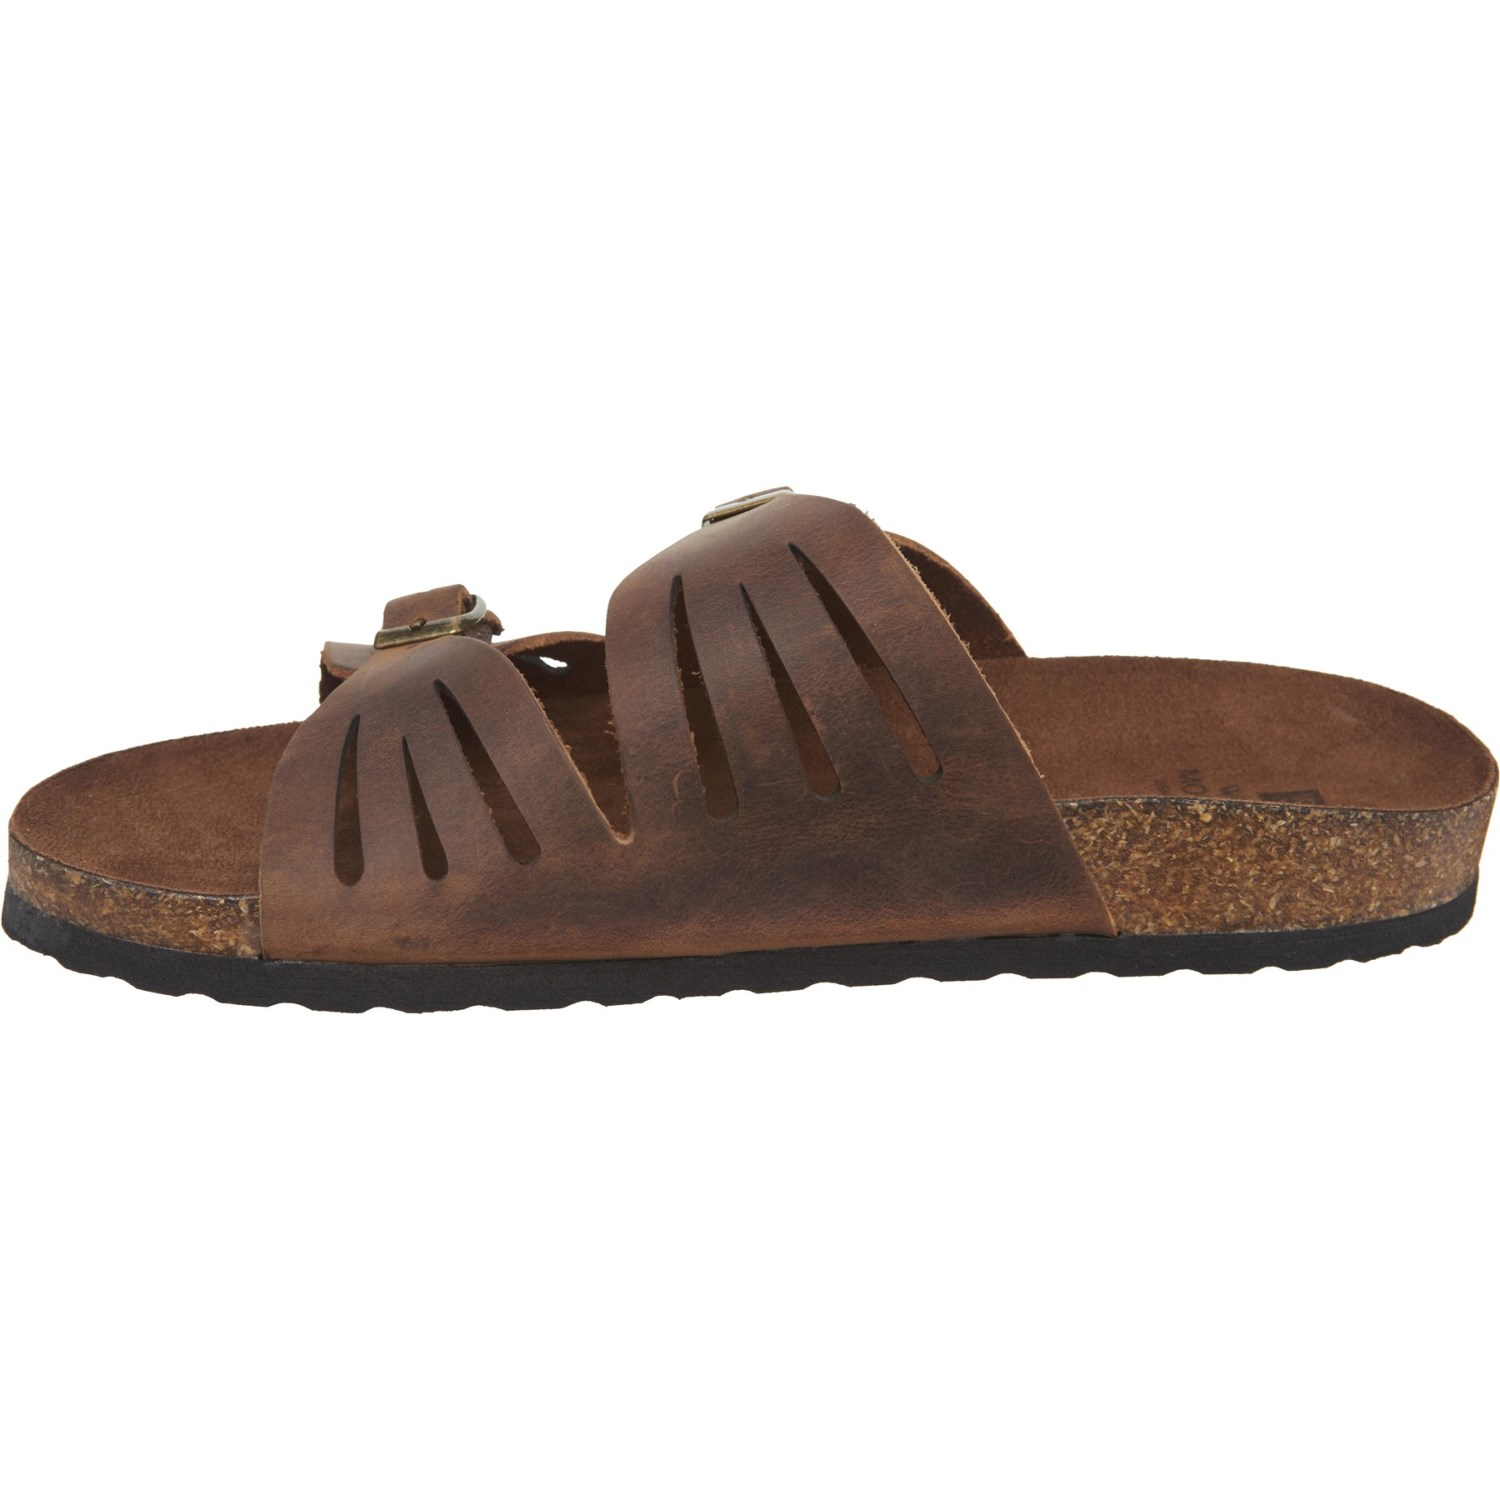 6ee5d8c92 White Mountain Gwinnett Sandals (For Women) - Save 30%